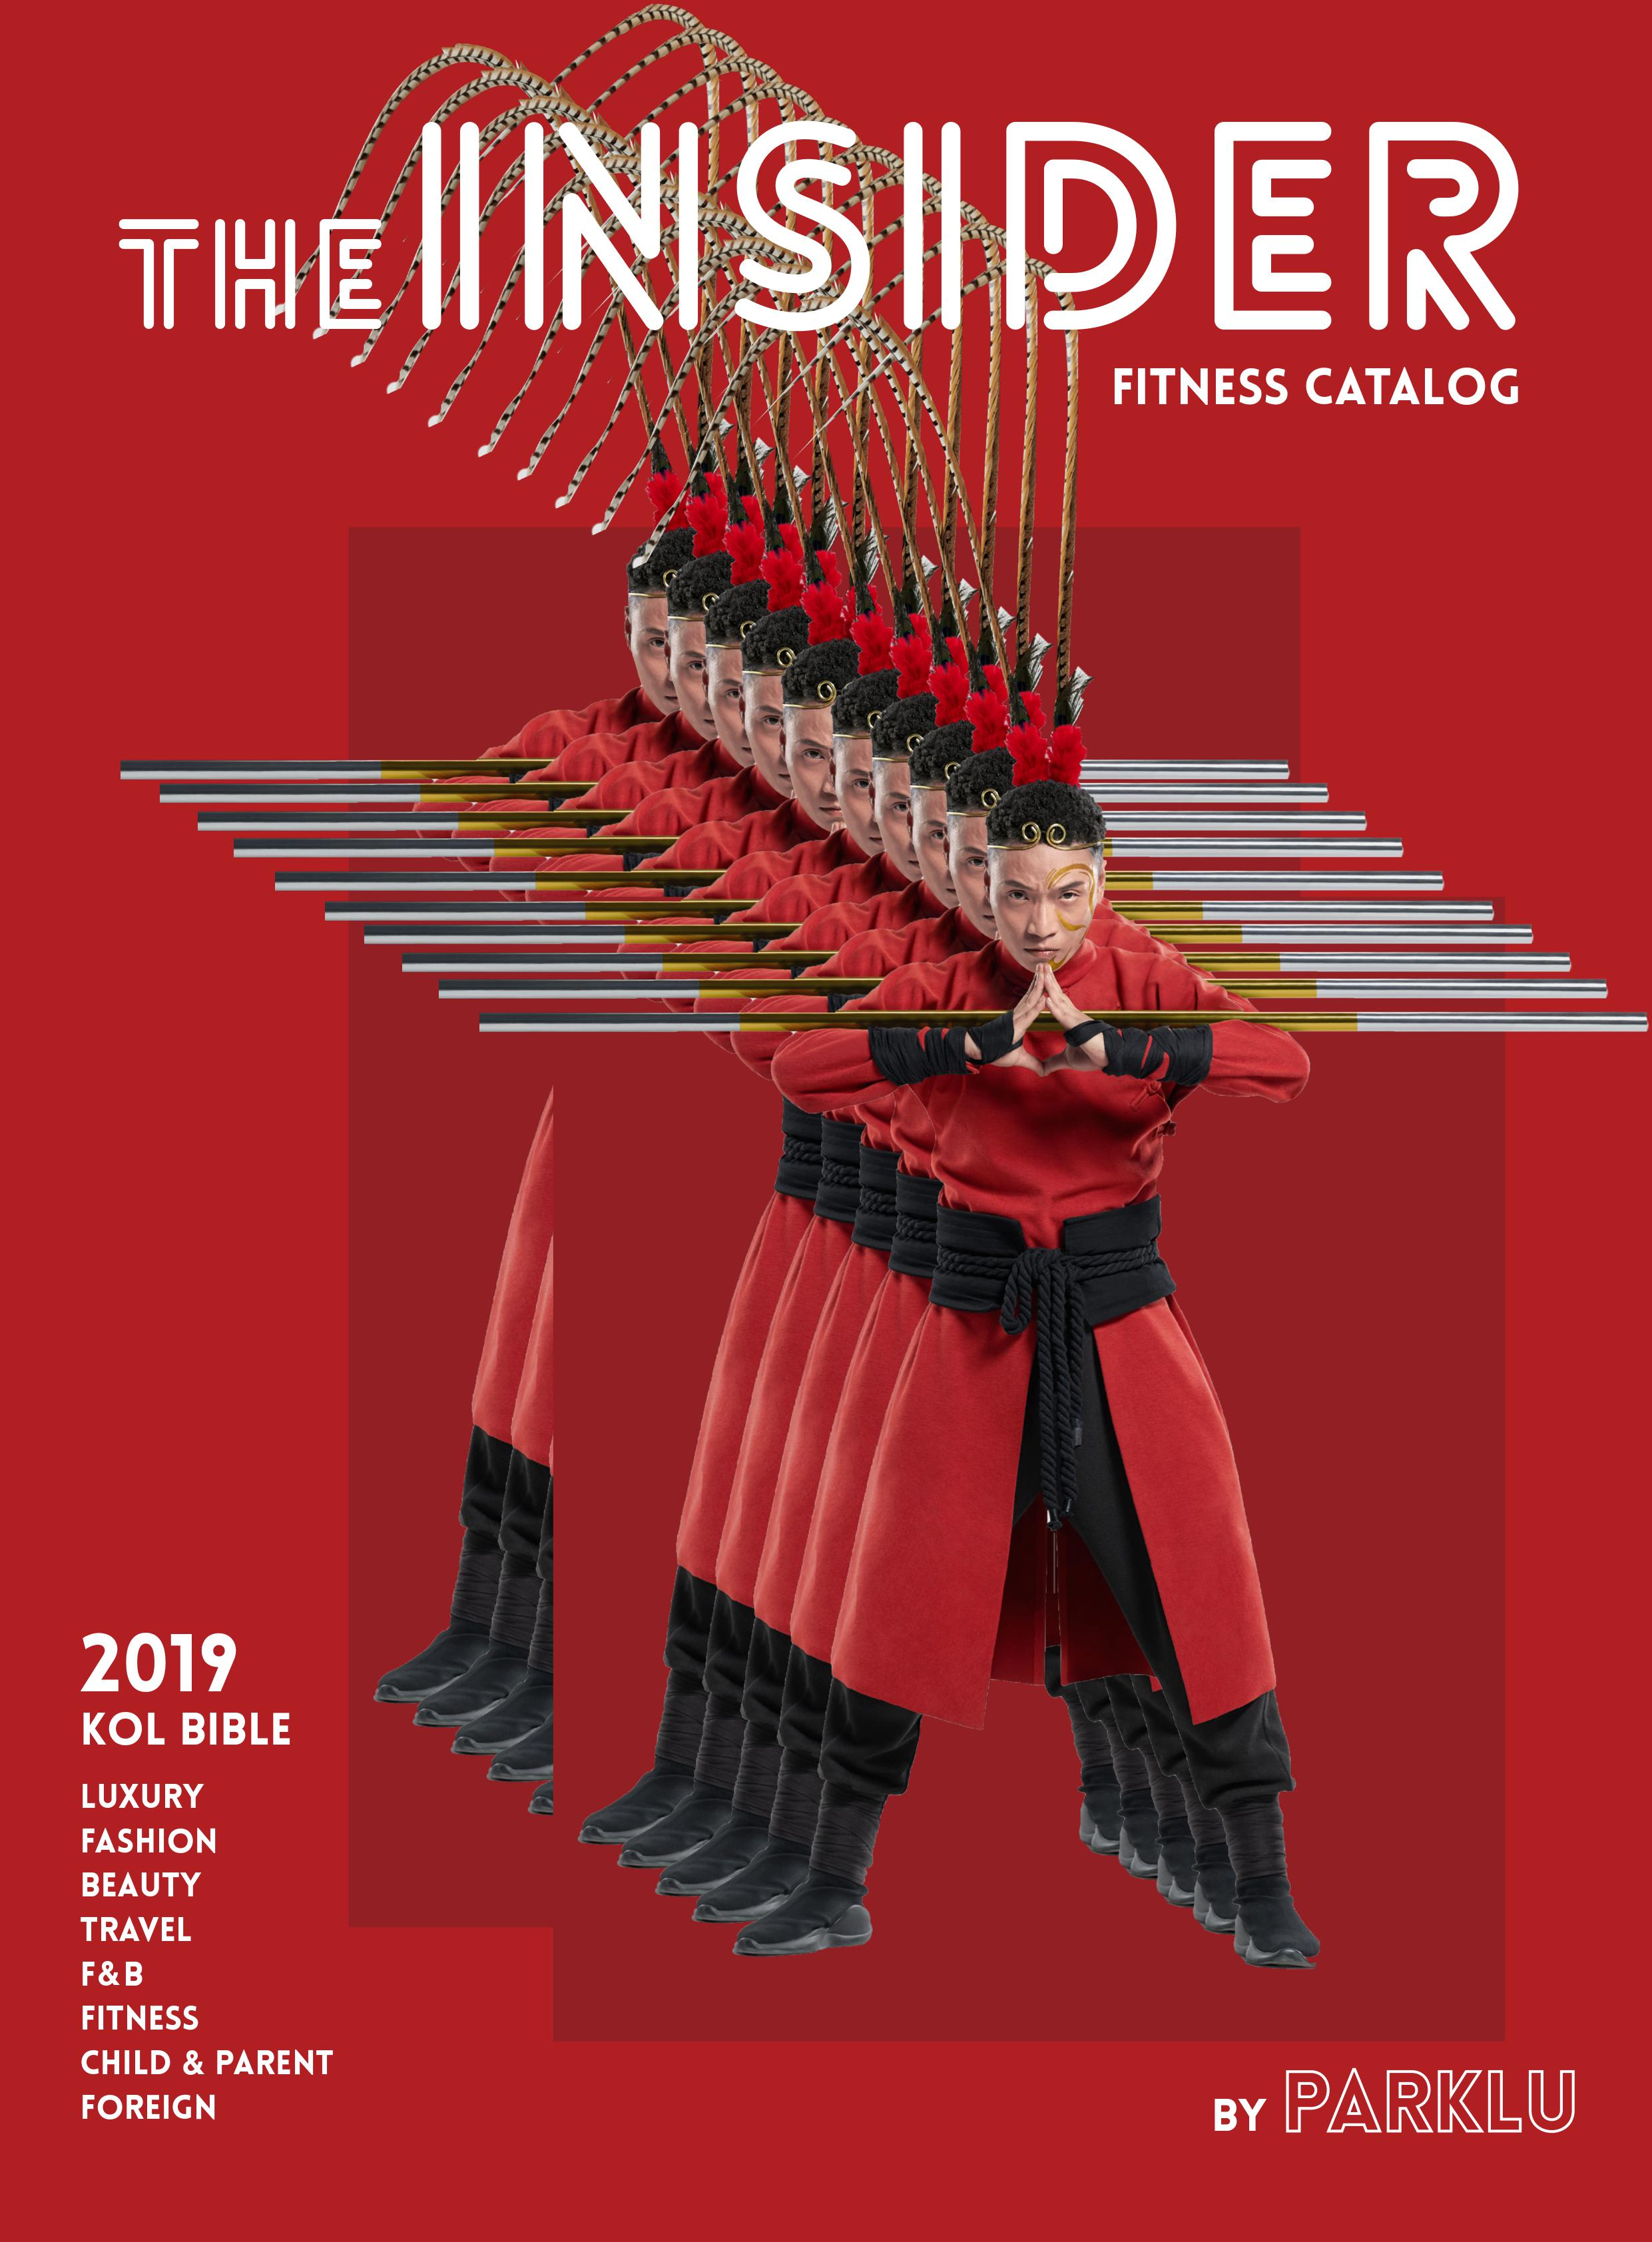 Fitness KOL Catalog Featuring Dance, Yoga, and Bodybuilding